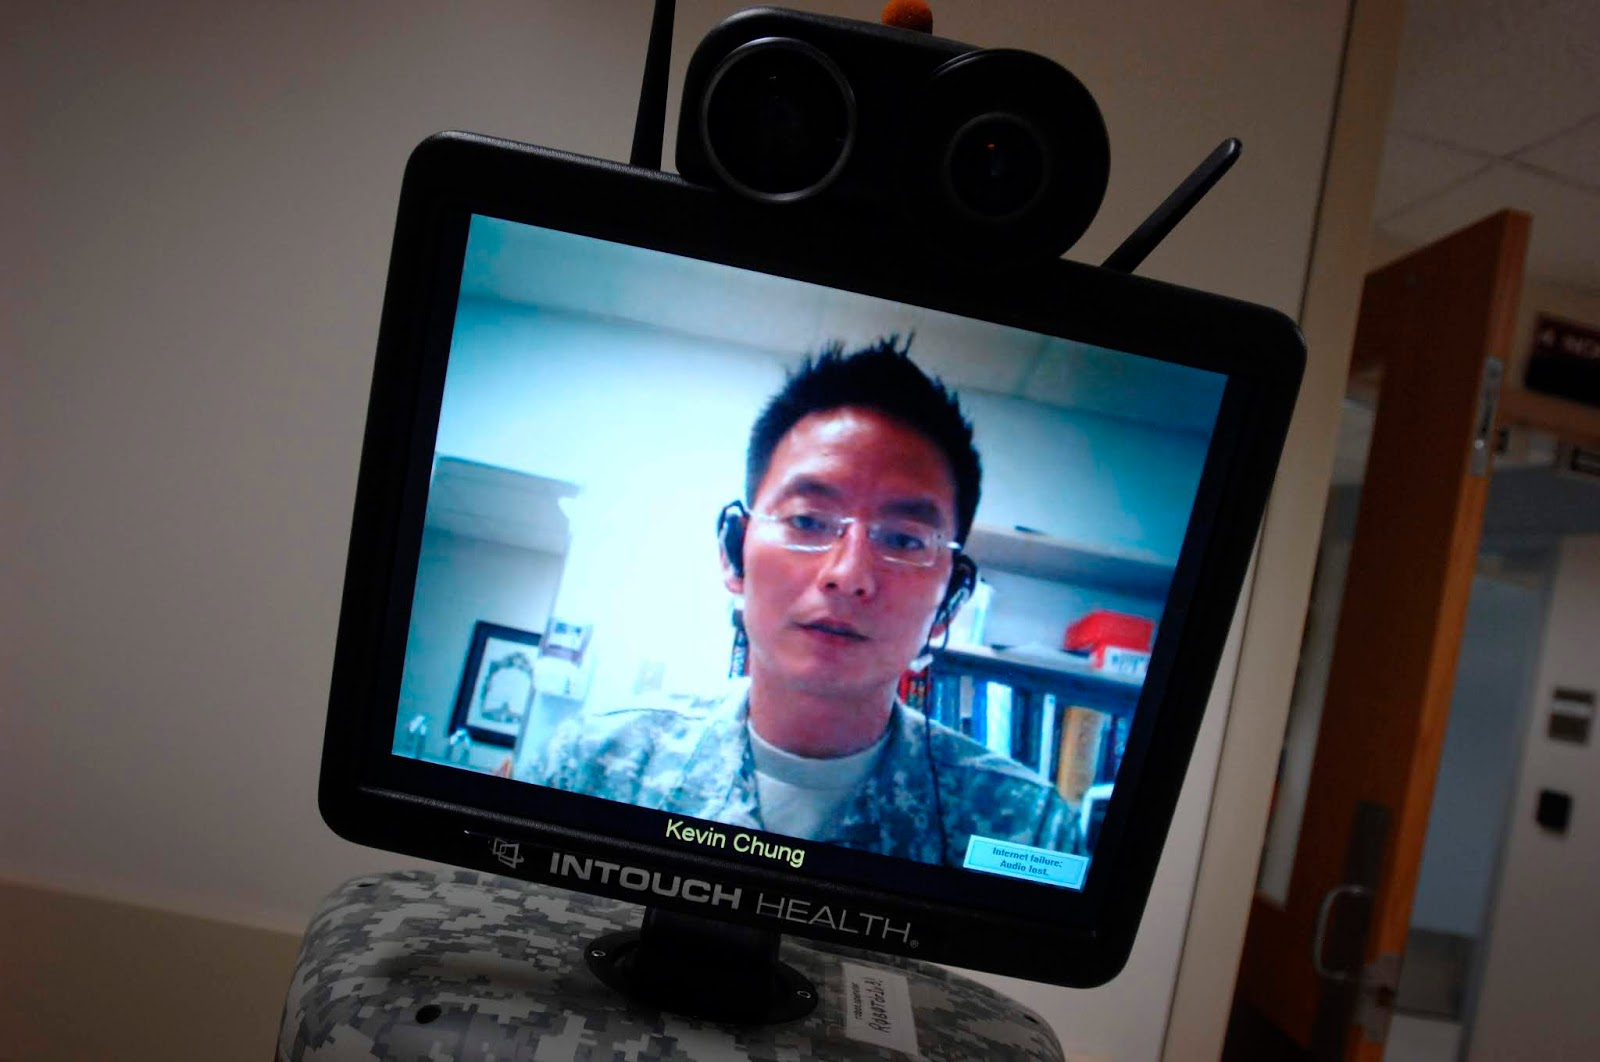 Army Col. (Dr.) Kevin Chung, in 2008, remotely controls an RP-7 remote presence robot in the intensive care unit at Brooke Army Medical Center in San Antonio. At the time, he was serving as medical director for the burn intensive care unit. (Photo by Fred Baker, Office of the Secretary of Defense Public Affairs) https://www.dvidshub.net/image/133798/hospital-robot-helps-save-lives-off-battlefield